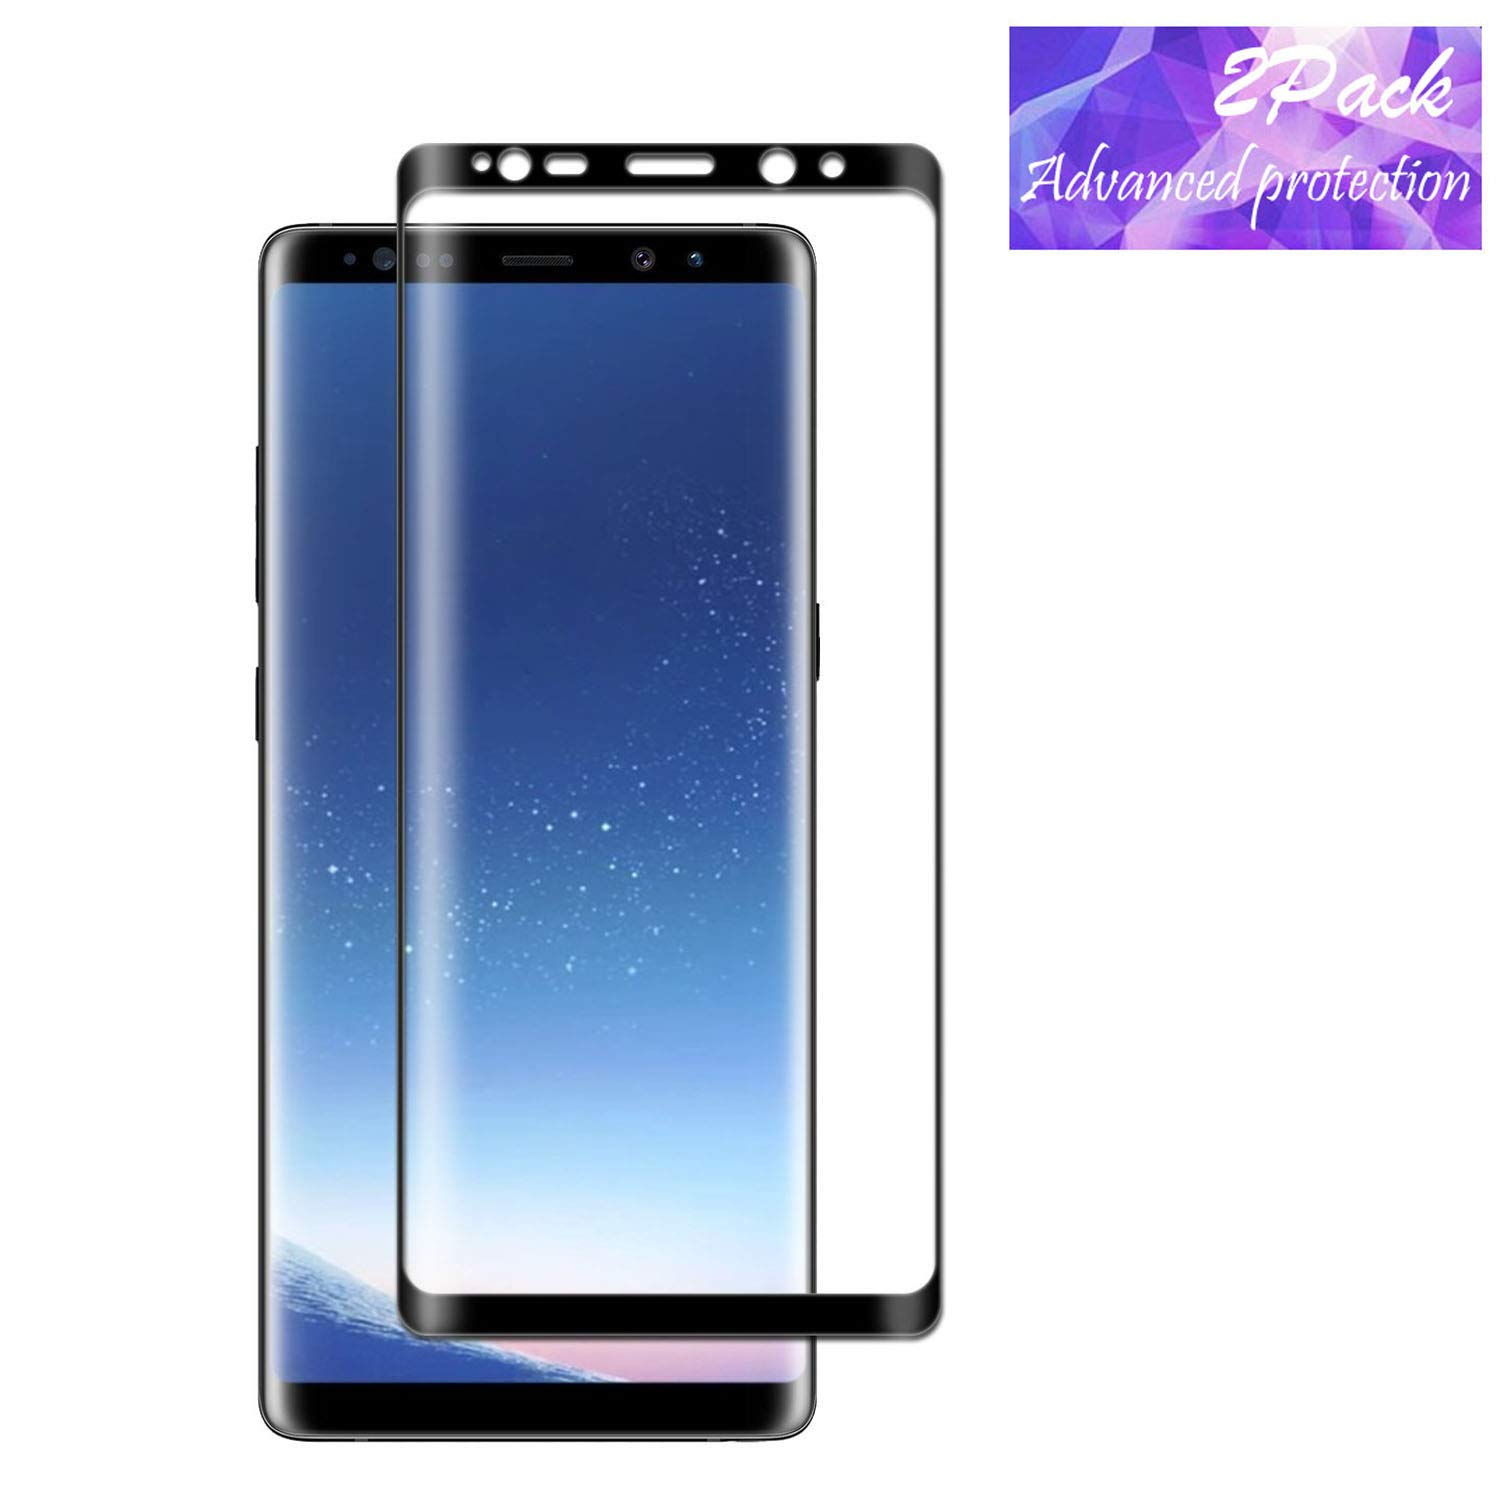 Galaxy Note 8 Screen Protector, LEDitBe[2-Pack][Case Friendly][Anti Scratch][Anti-Bubble]3D cured Premium Tempered Glass Screen Protector for Samsung Galaxy Note 8[black]